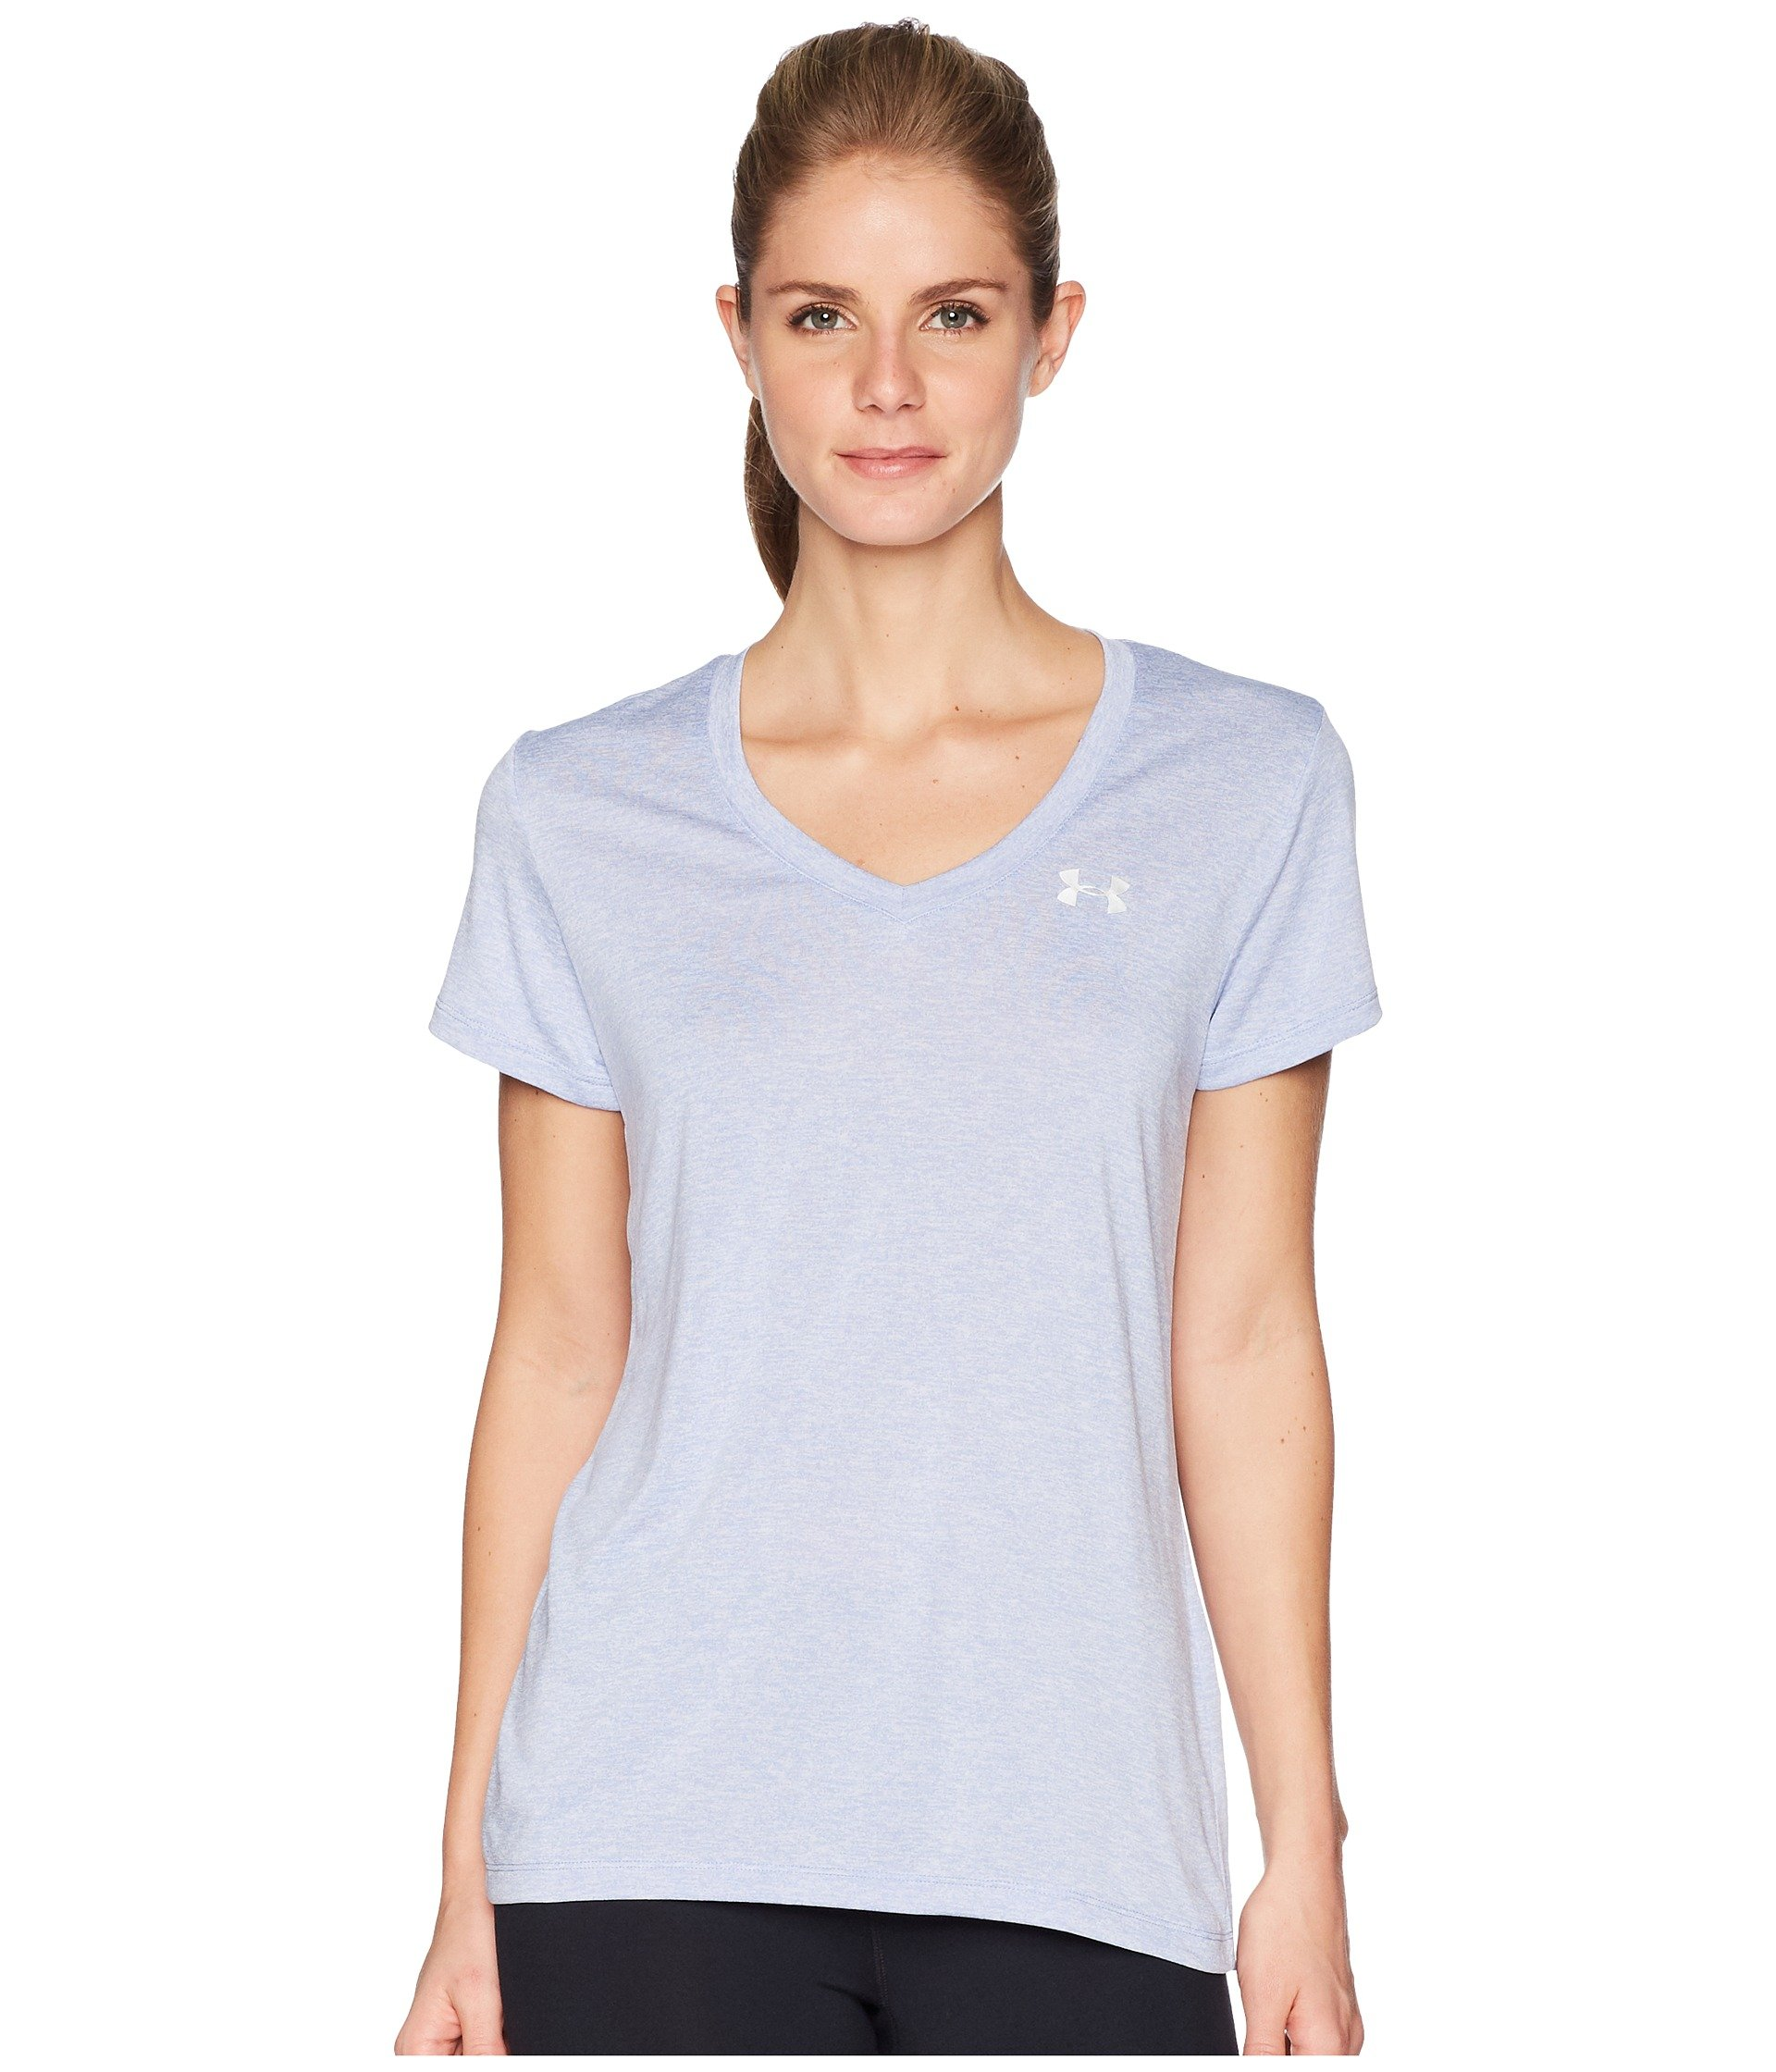 Under Armour Women's UA Tech¿ Twist V-Neck Talc Blue/Metallic Silver Small by Under Armour (Image #1)